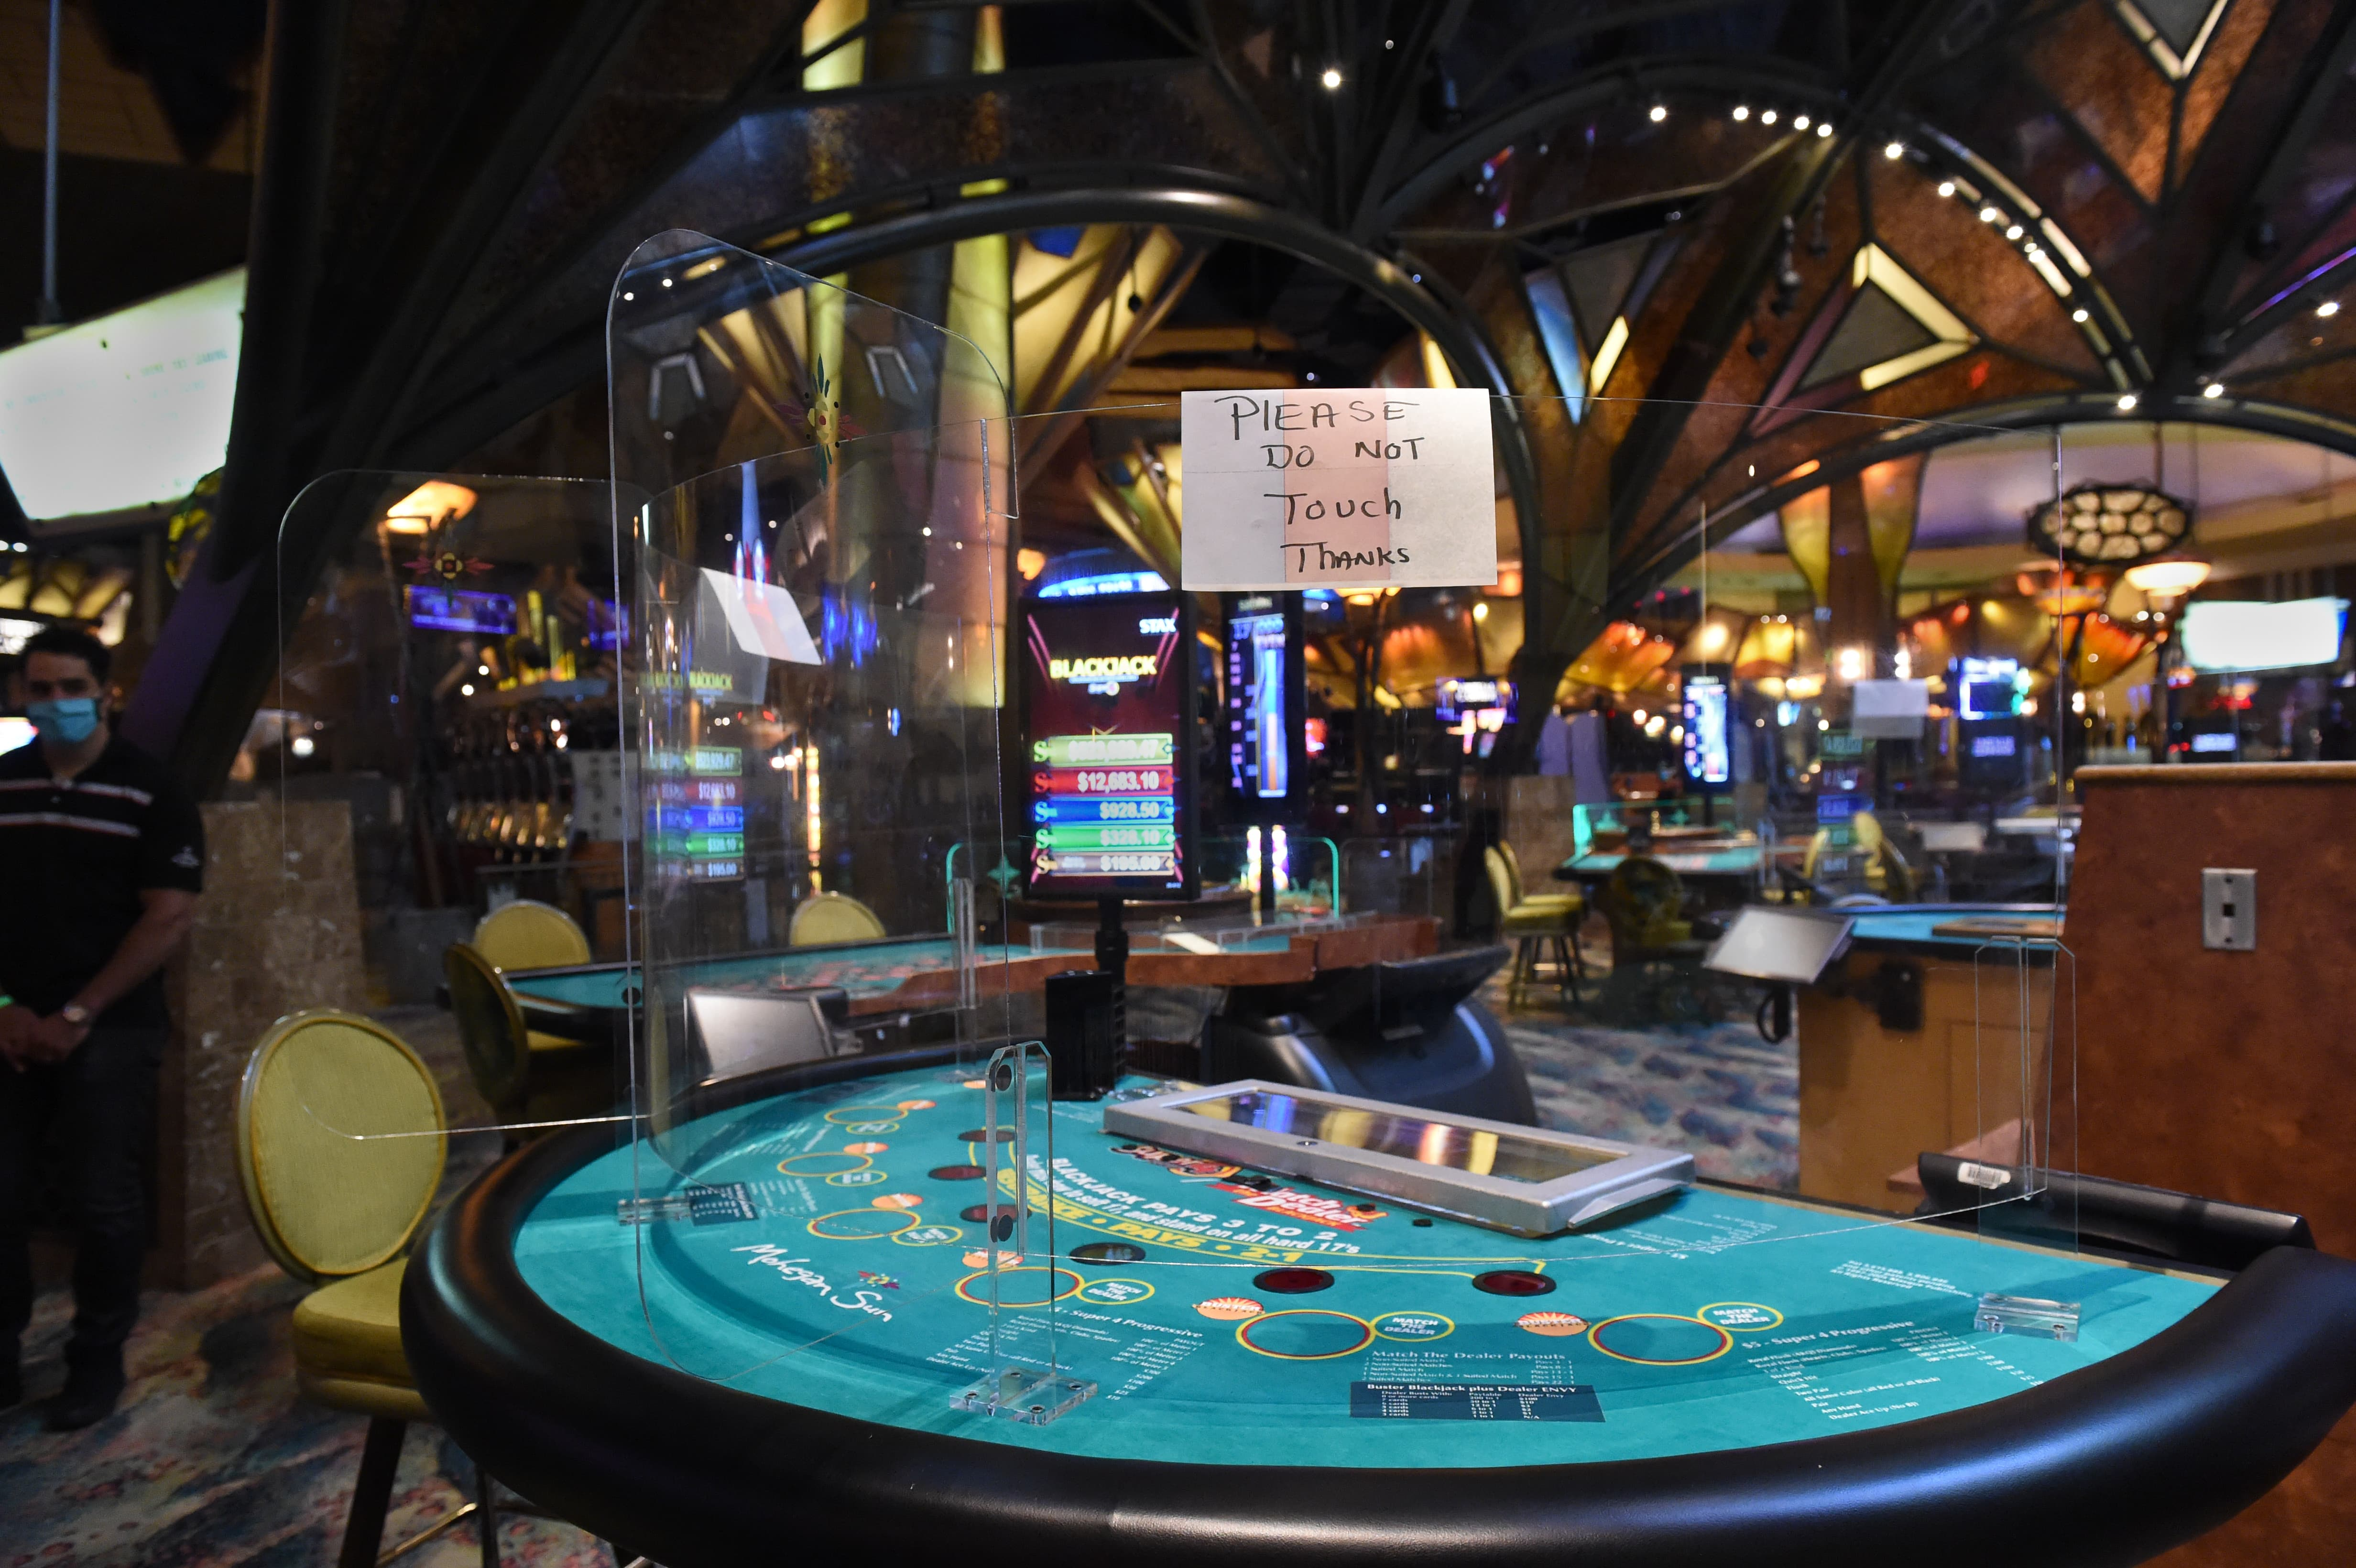 Live and on TV, gambling negotiations go public